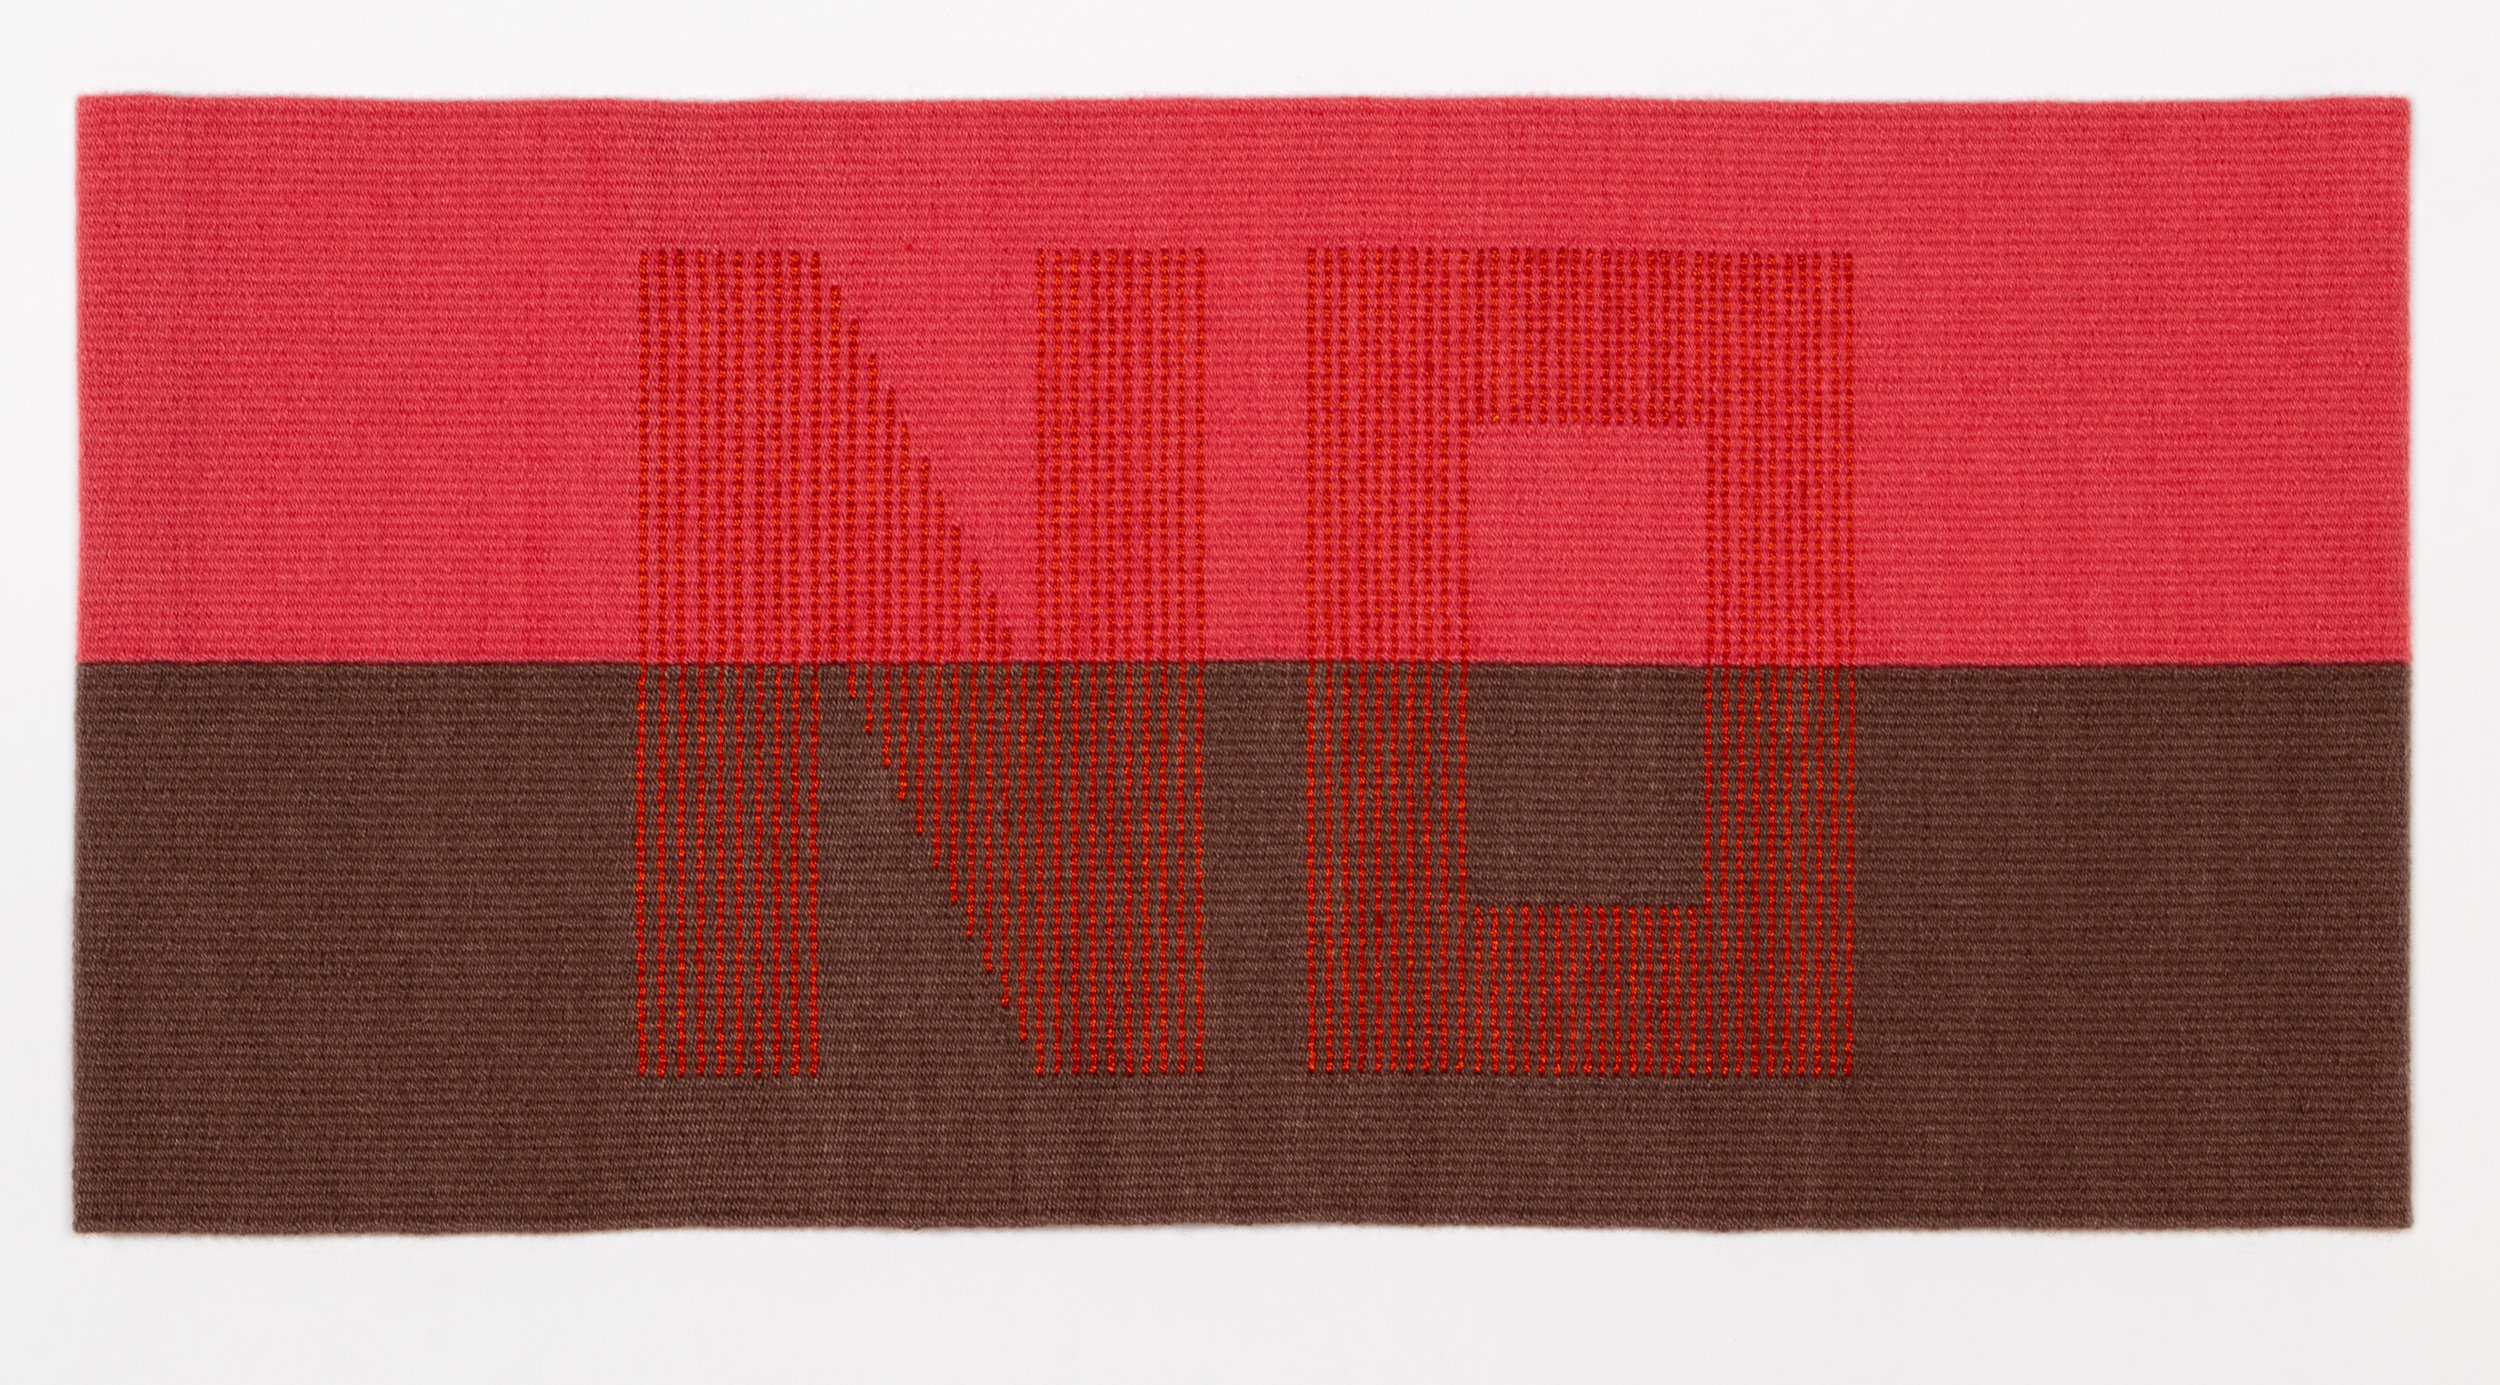 """Susan Iverson,  The Color of NO - Orange on Peach and Lt. Brown,  2018  Wool, silk  16"""" x 33.5"""""""